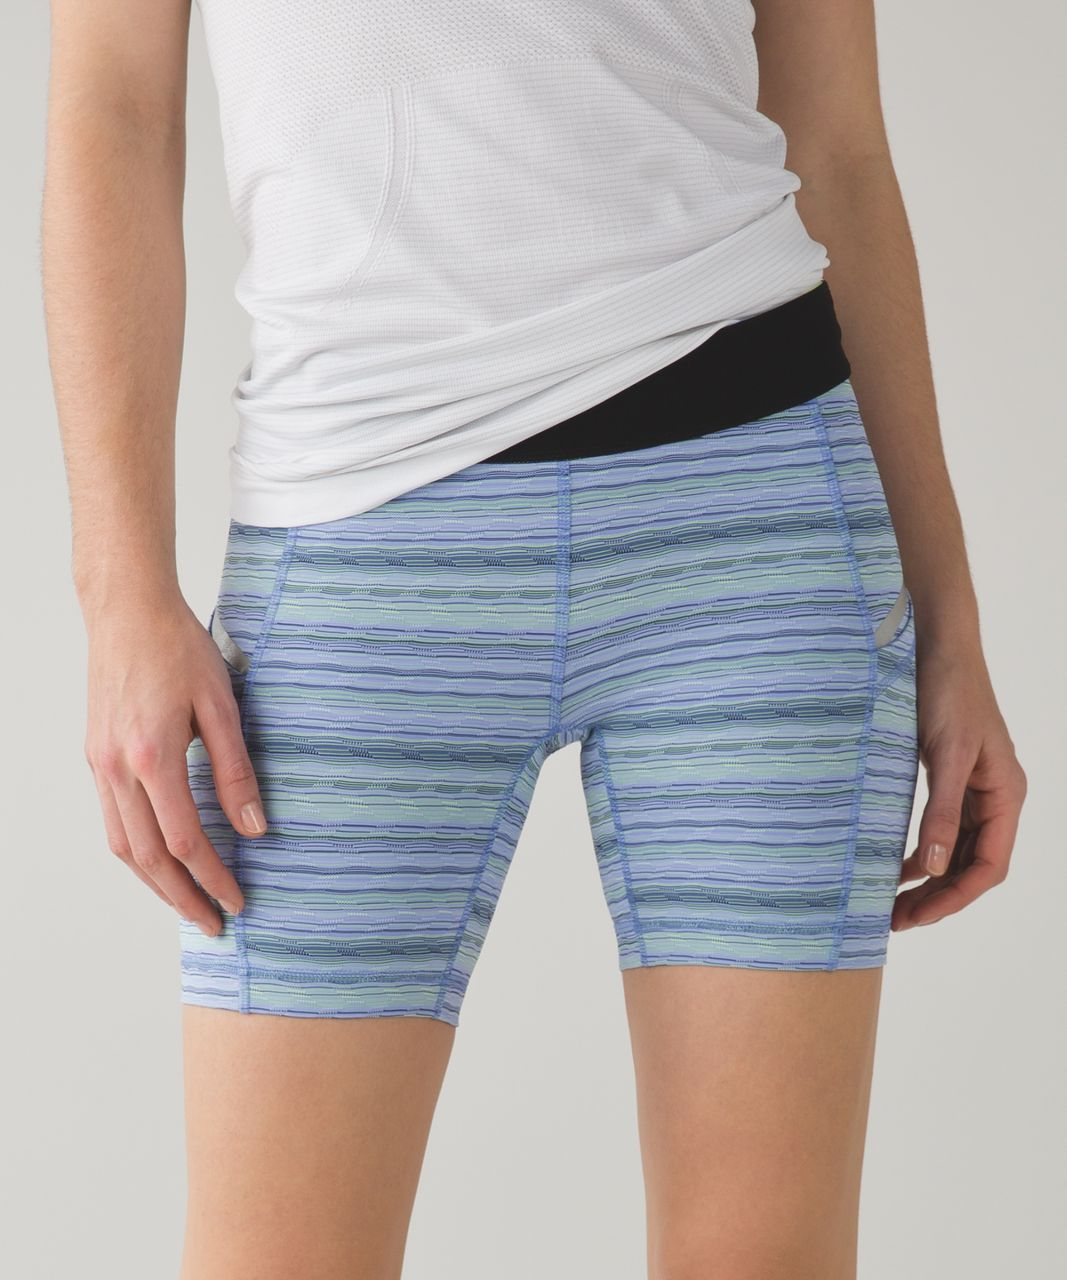 Lululemon What The Sport Short II - Space Dye Twist Lullaby Ray